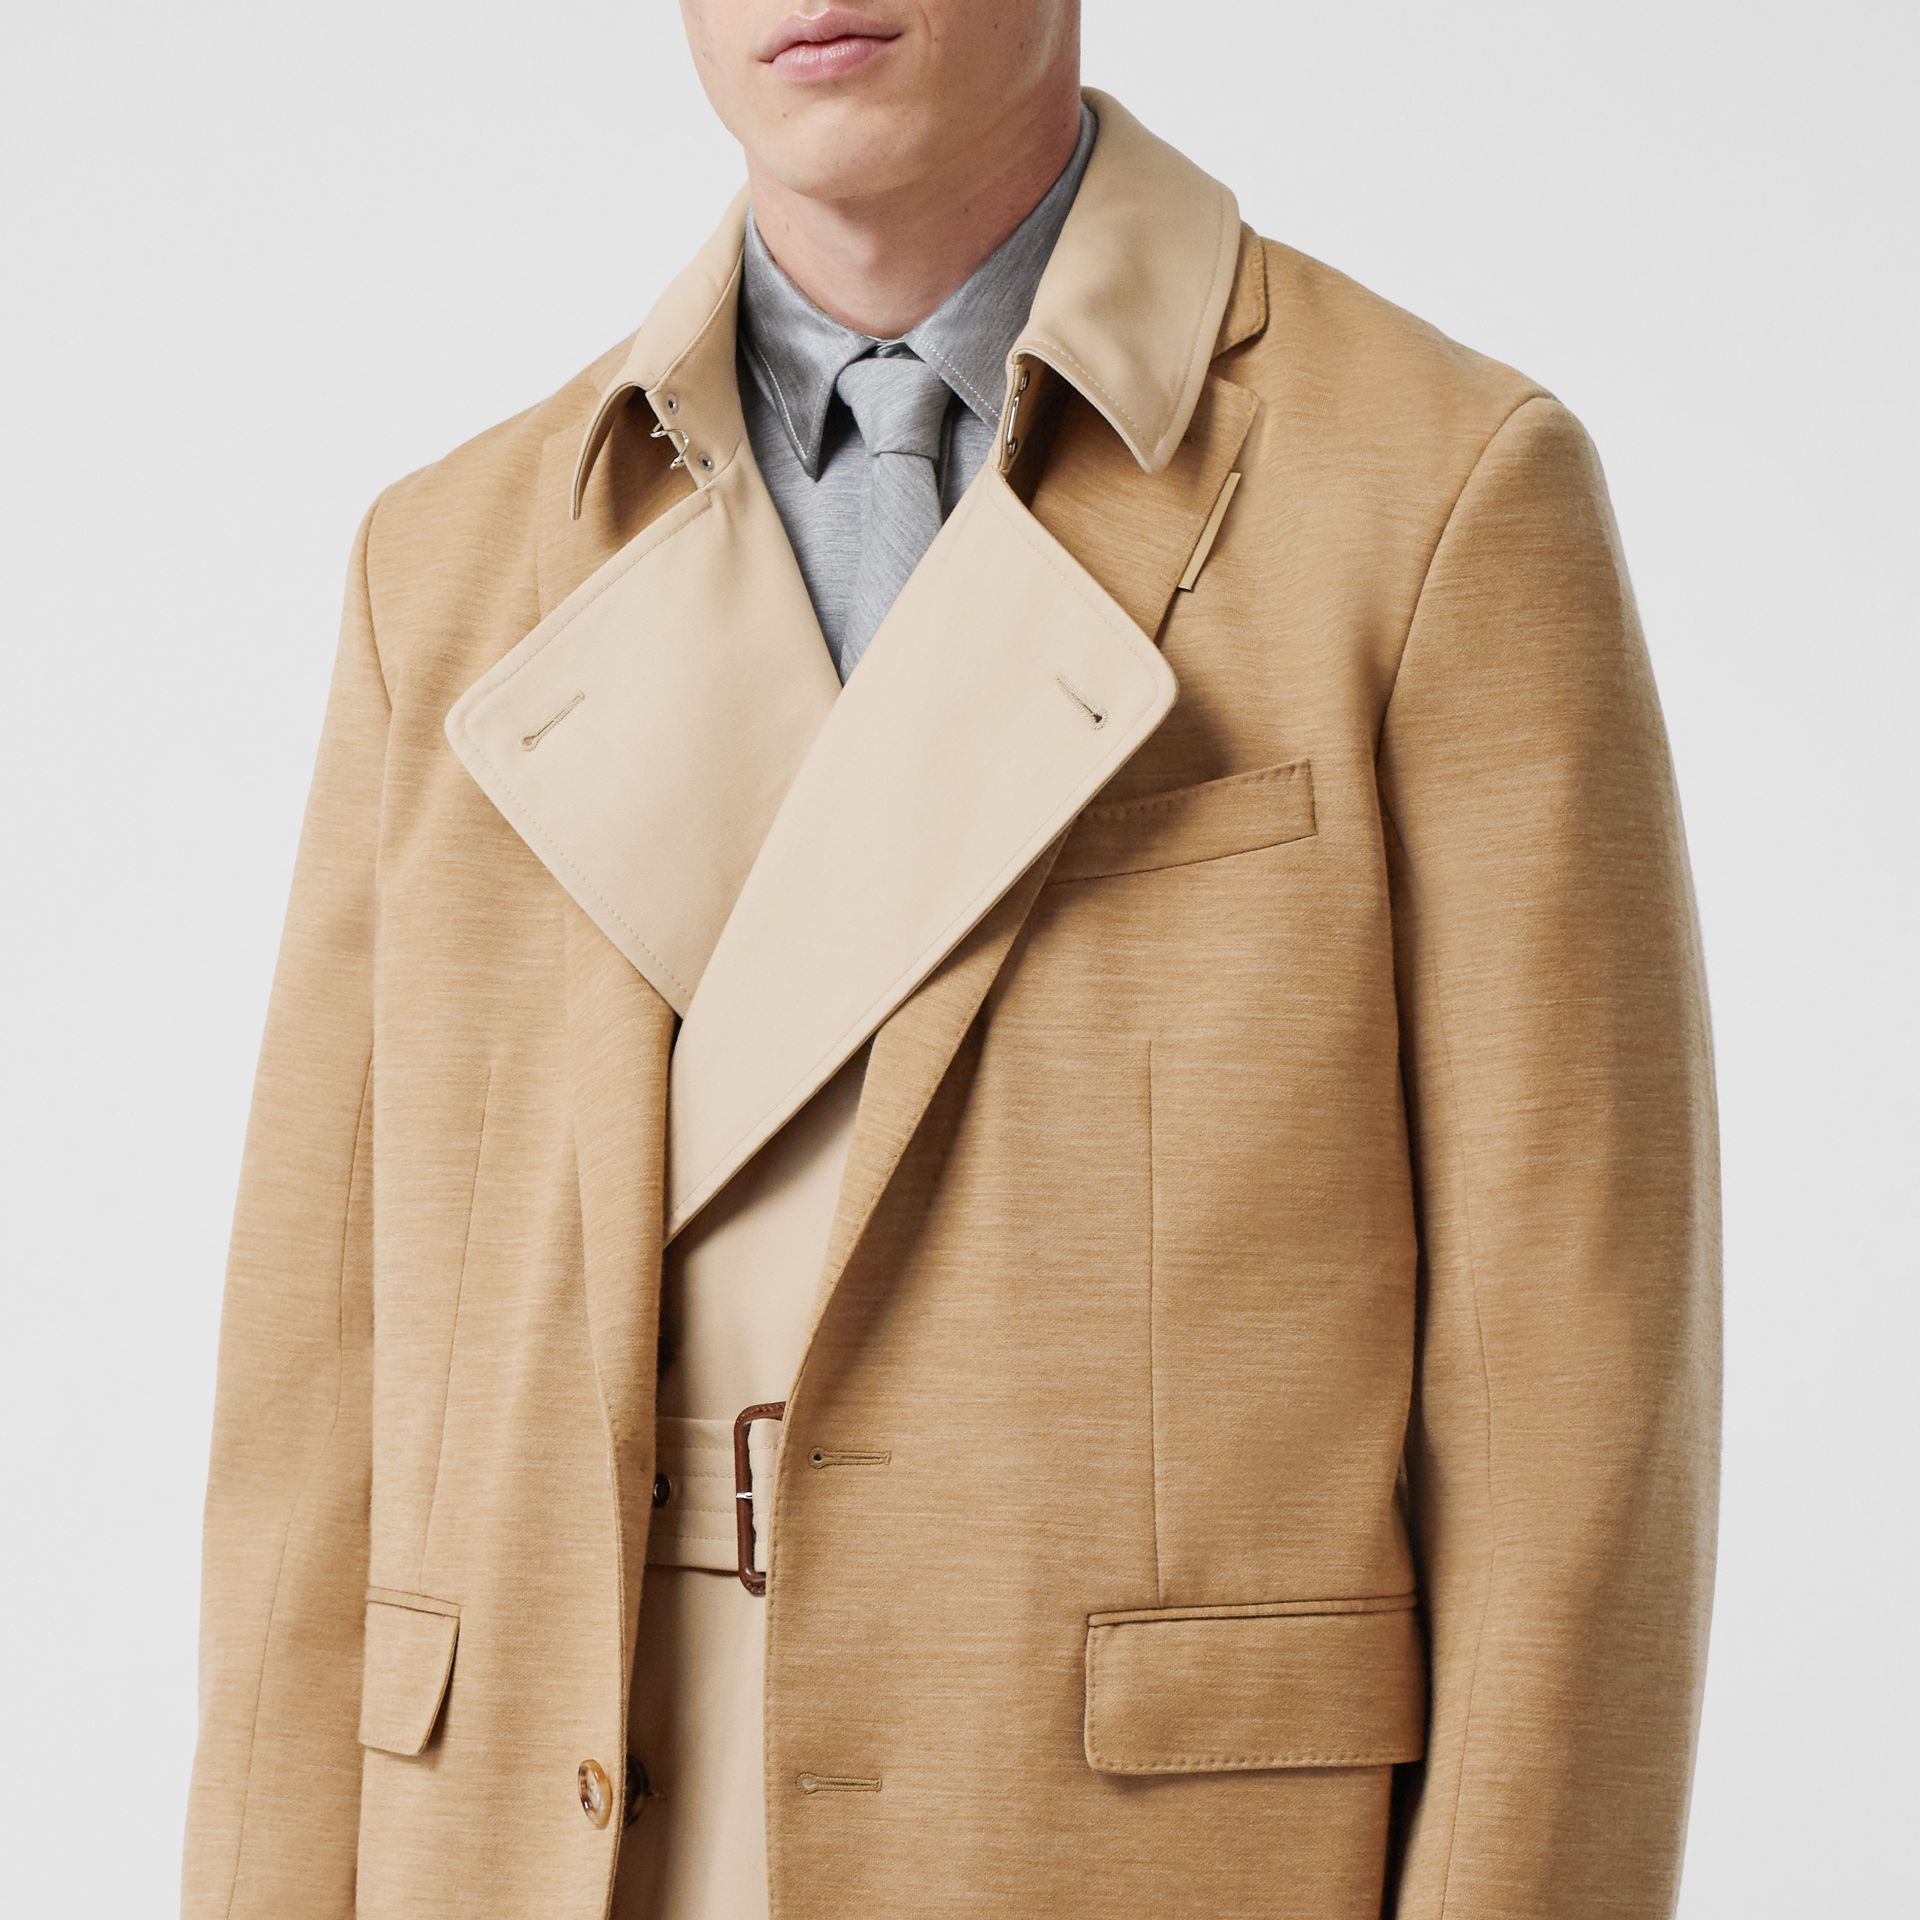 Blazer Detail Cotton Twill Reconstructed Trench Coat in Soft Fawn - Men | Burberry - gallery image 4